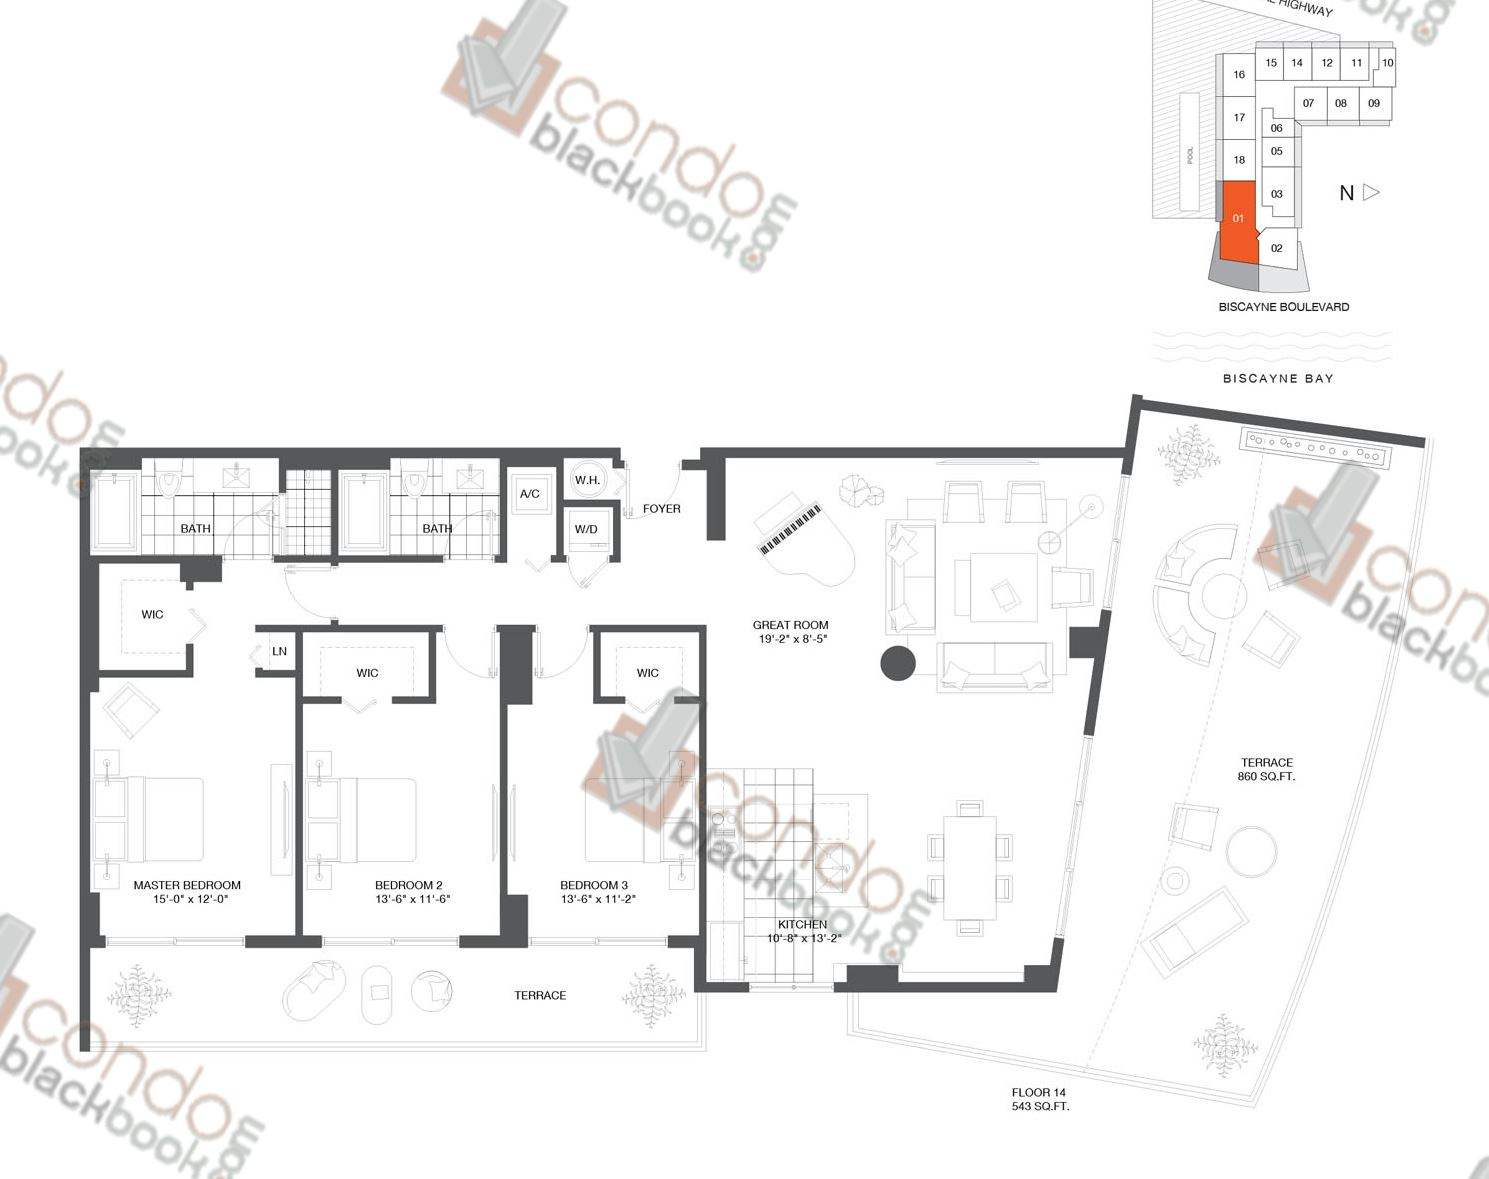 Floor plan for Baltus House Design District / Buena Vista Miami, model Residence 01, line 01, 2/2 bedrooms, 1,160 sq ft